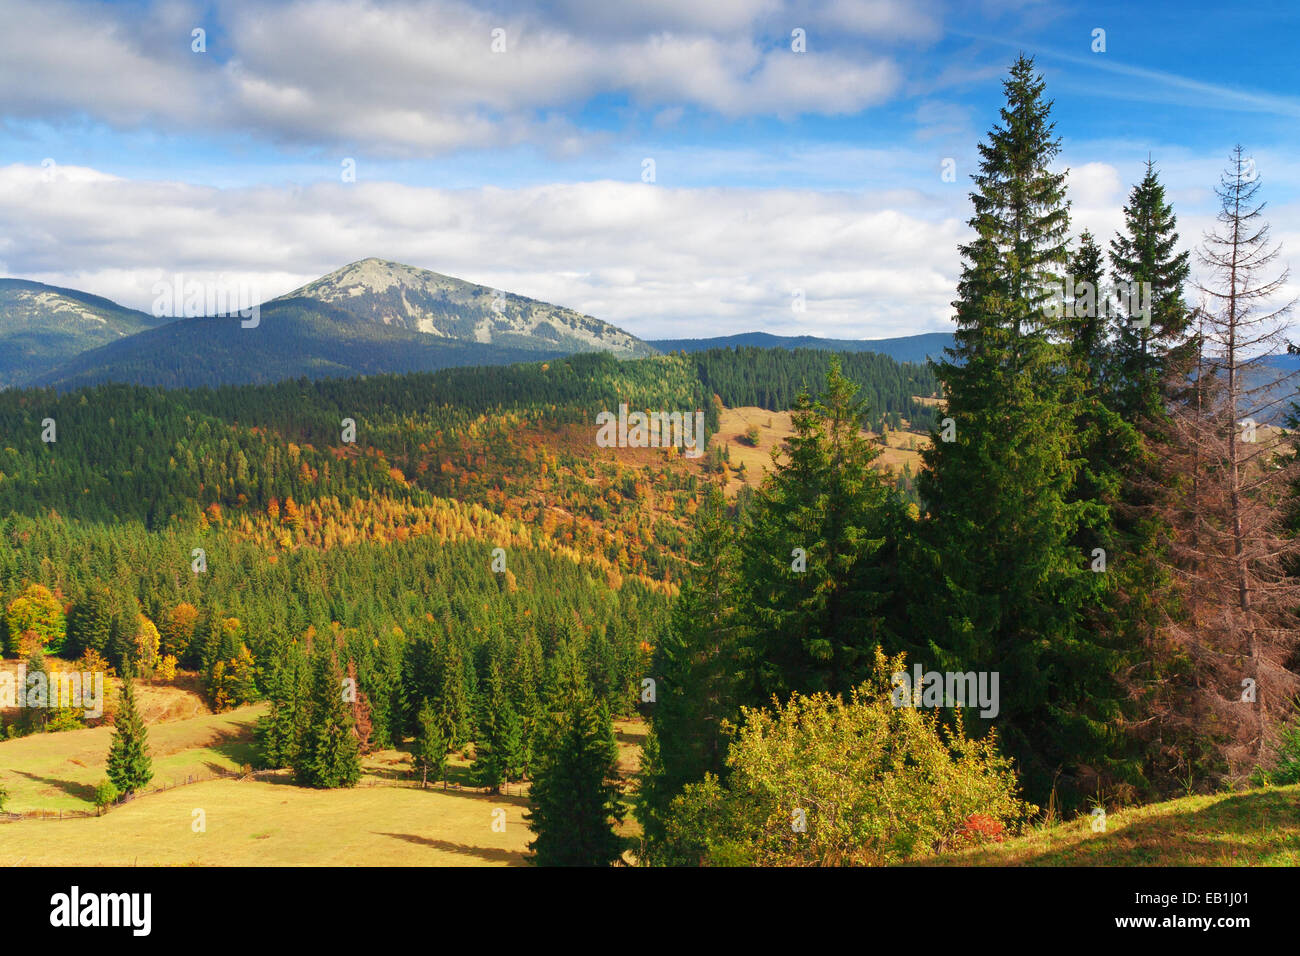 mountains landscape with fir trees - Stock Image